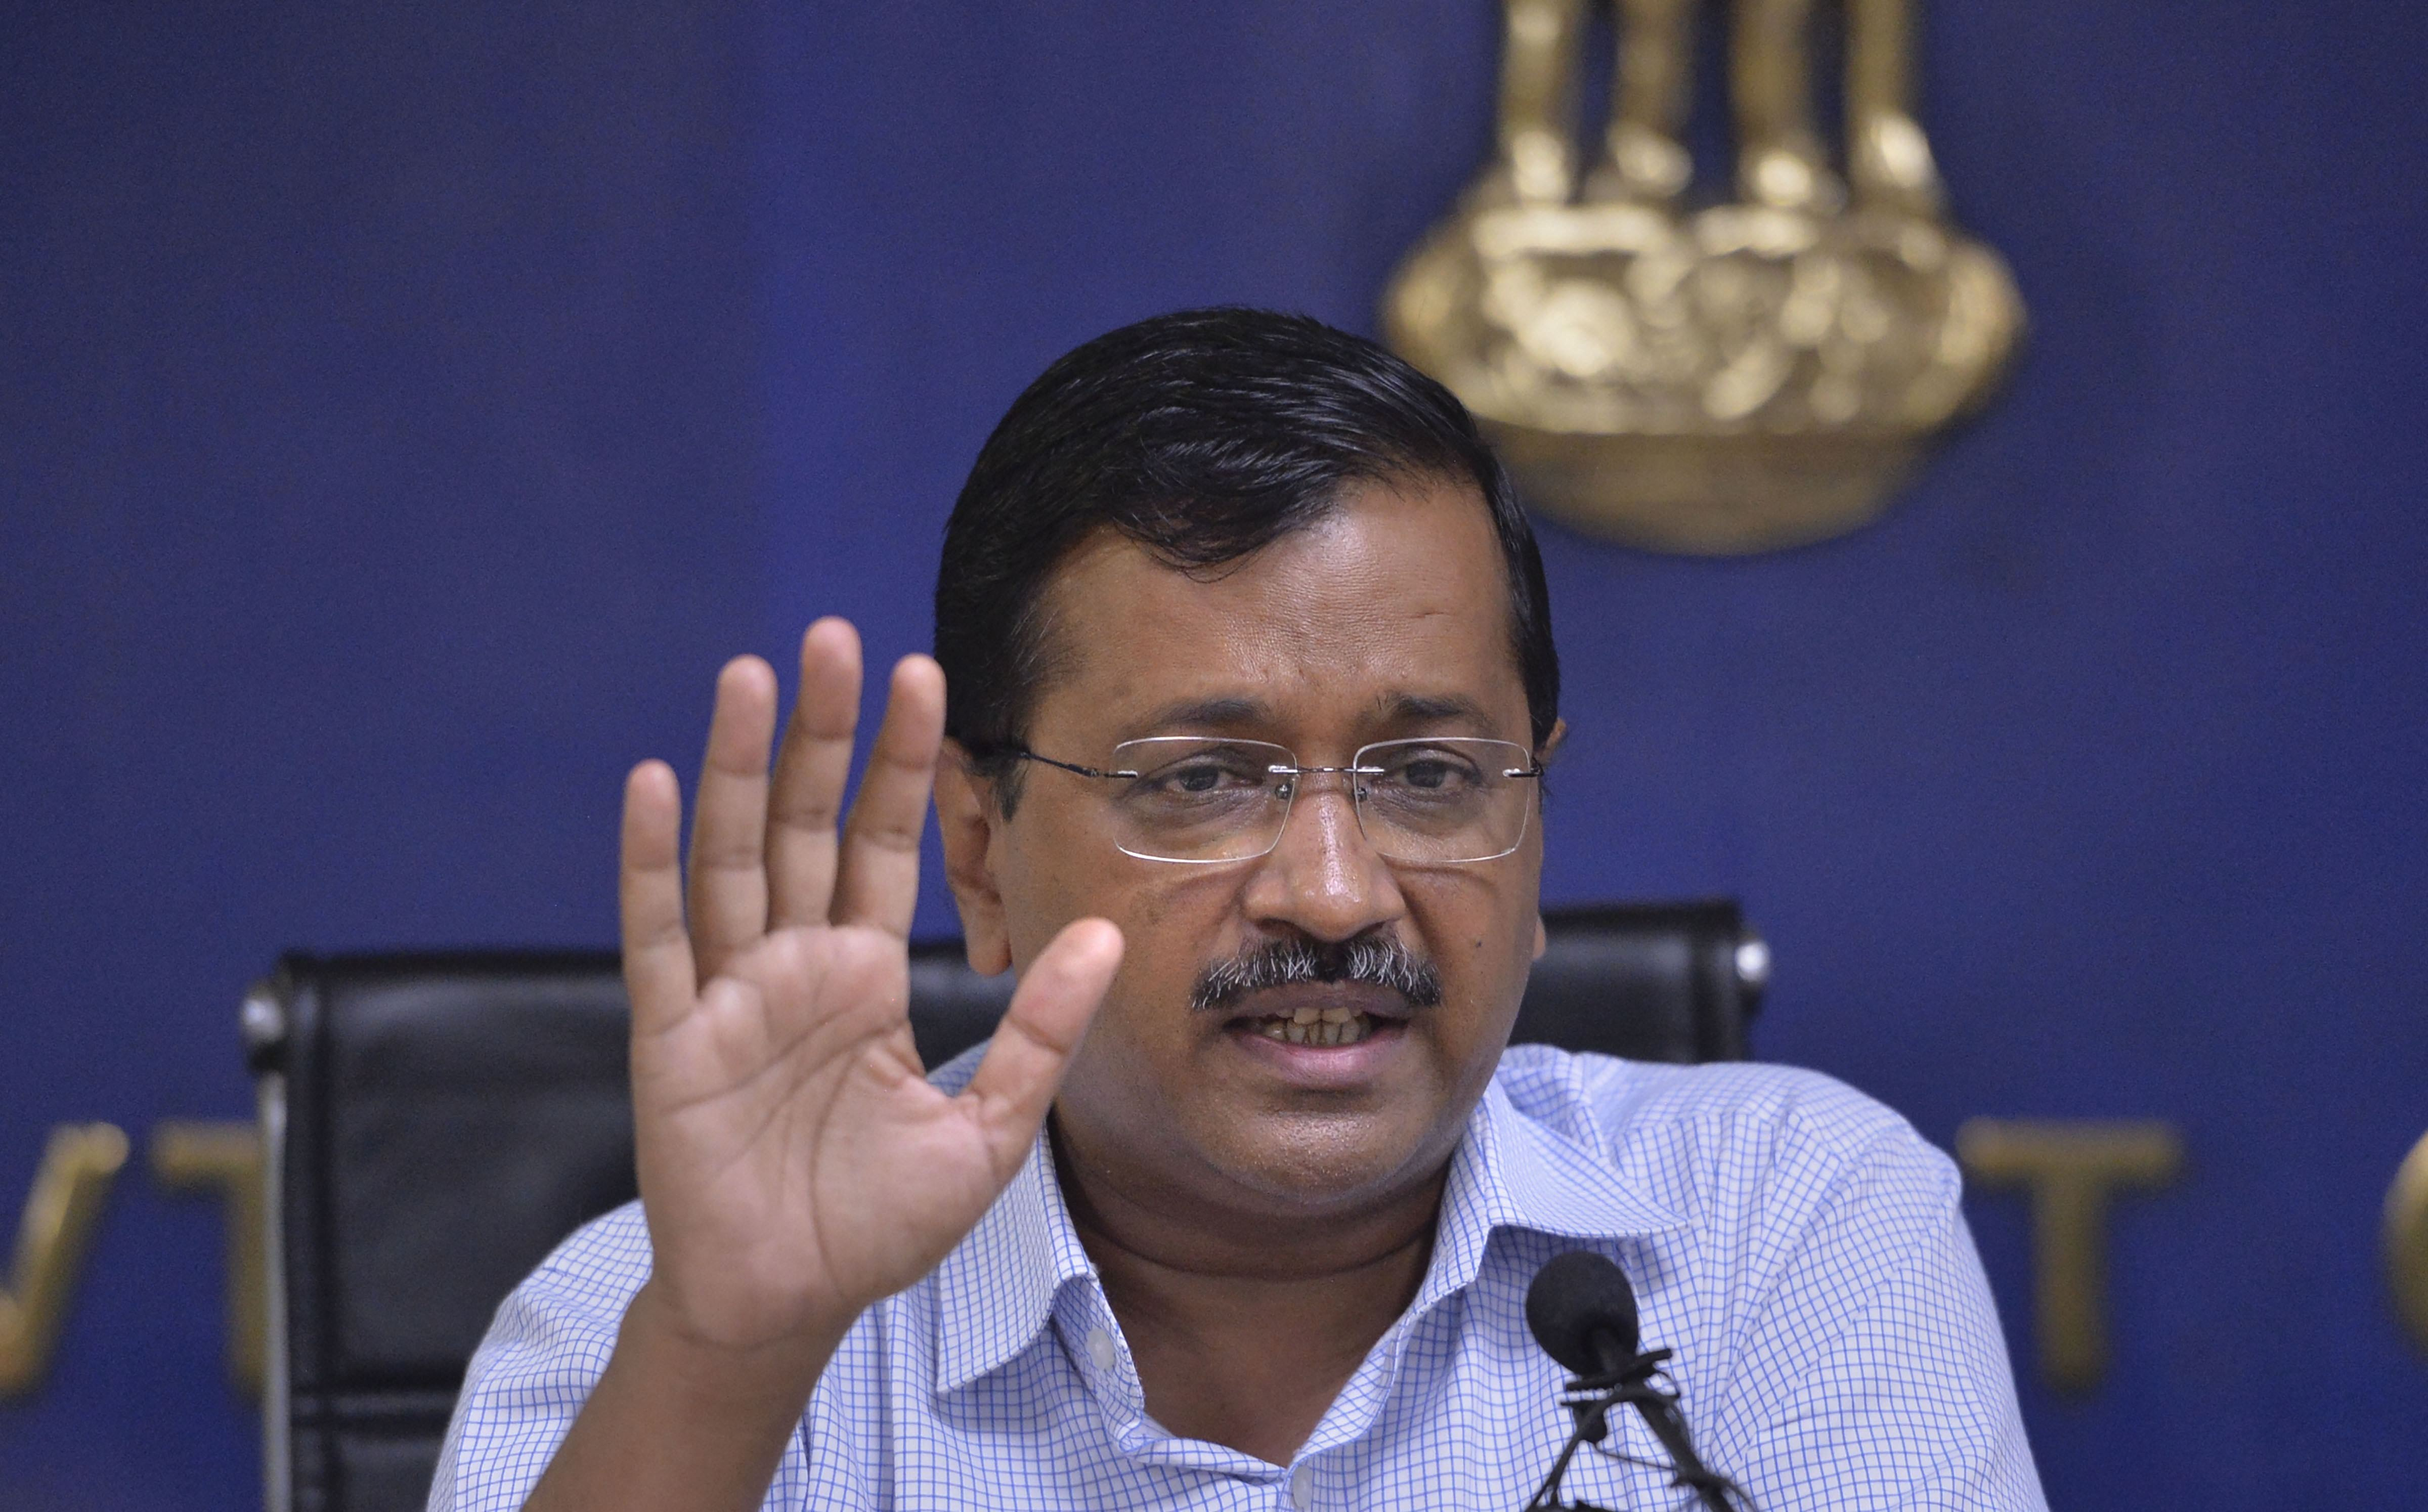 Delhi chief minister Arvind Kejriwal has repeatedly asked house-owners not to insist on rent or forcibly evict people, and even made a verbal offer of compensation if tenants defaulted after the lockdown, but no government scheme to compensate them has been announced yet.